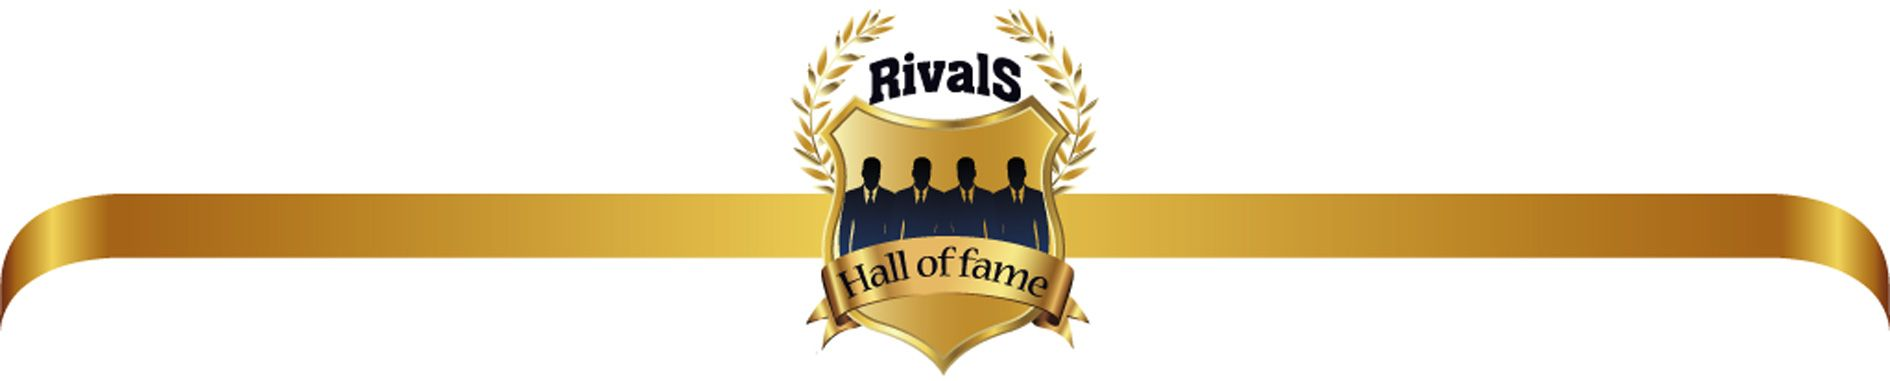 Rivals Hall of Fame